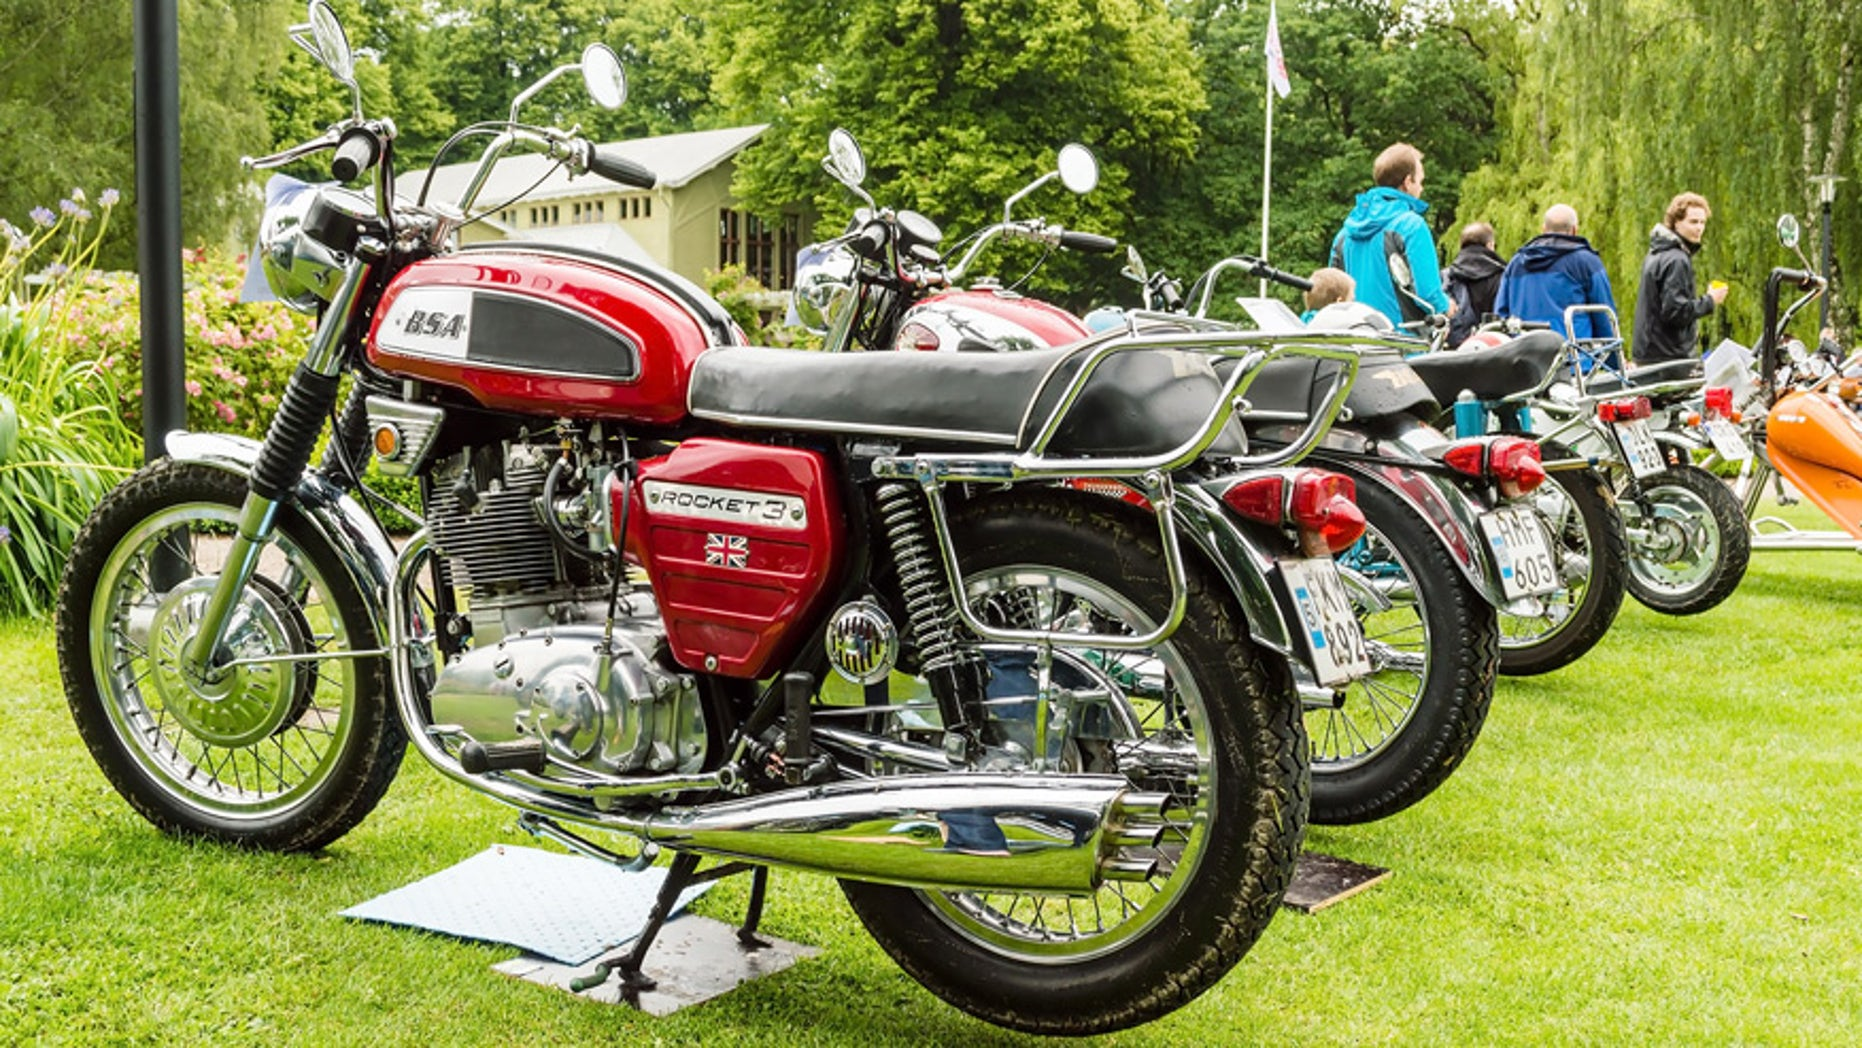 Bsa Motorcycles Back In Business Fox News